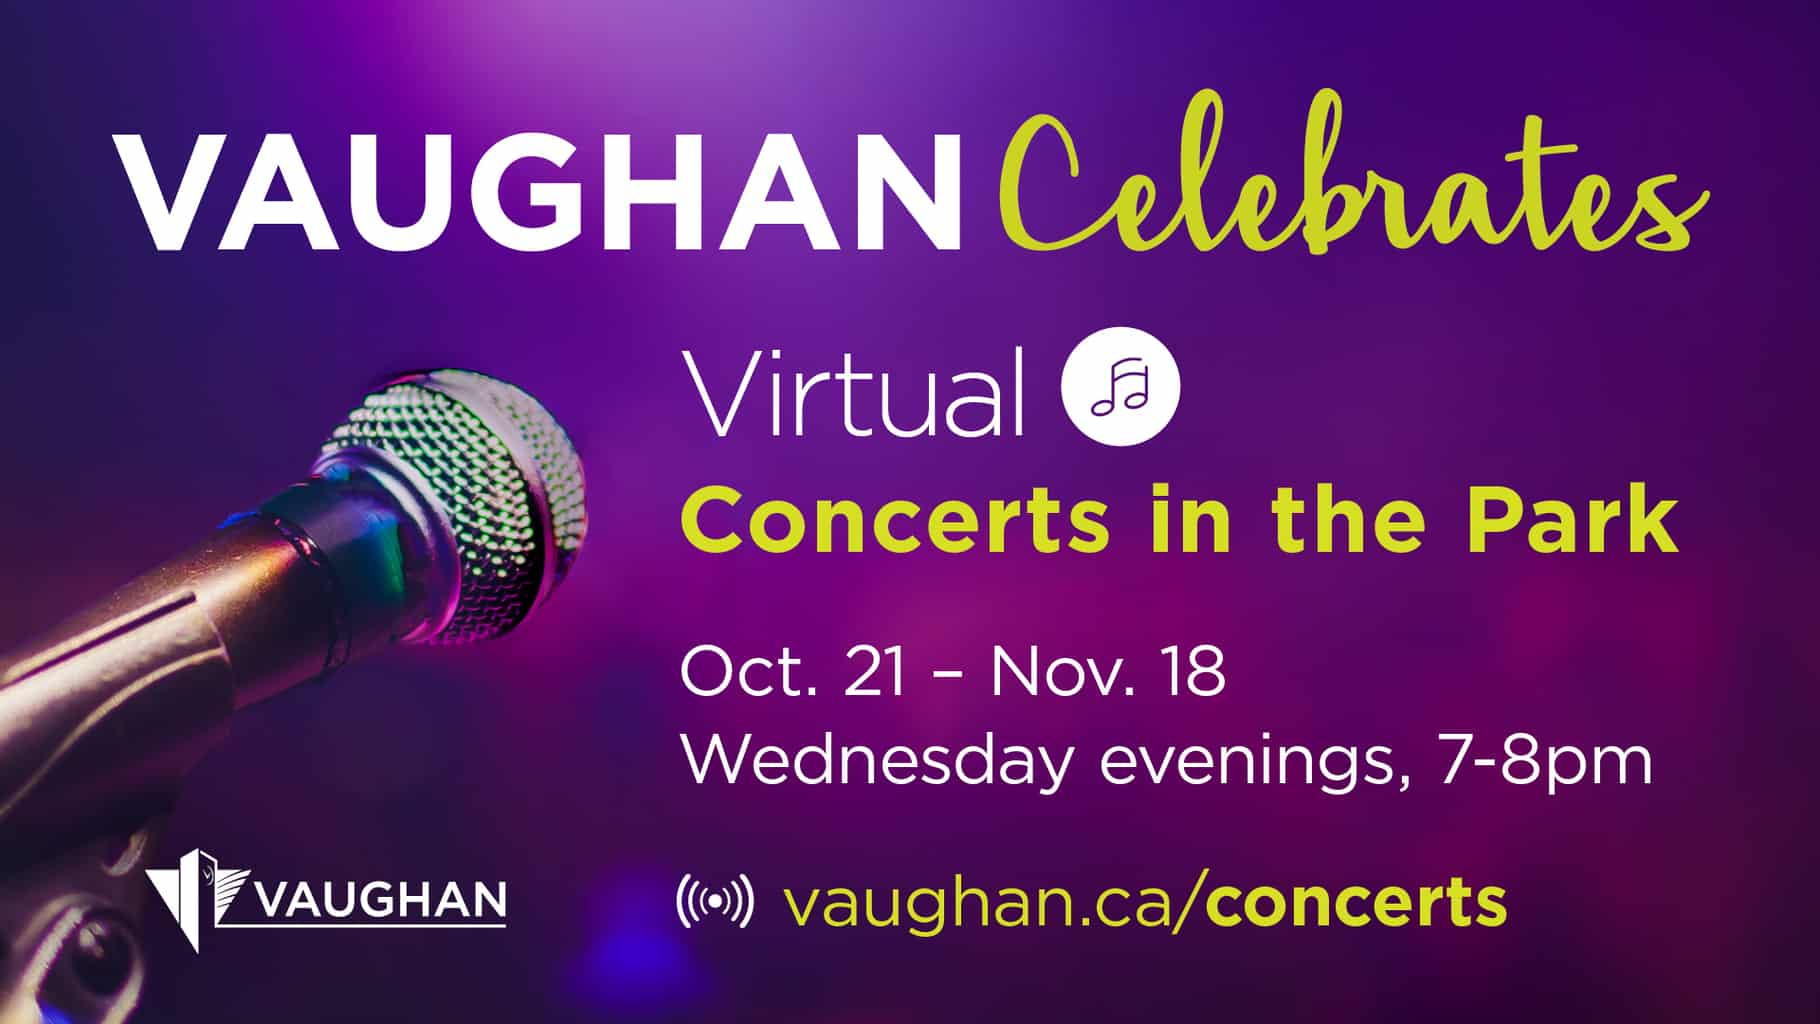 Vaughan Celebrates Virtual Concerts in the Park